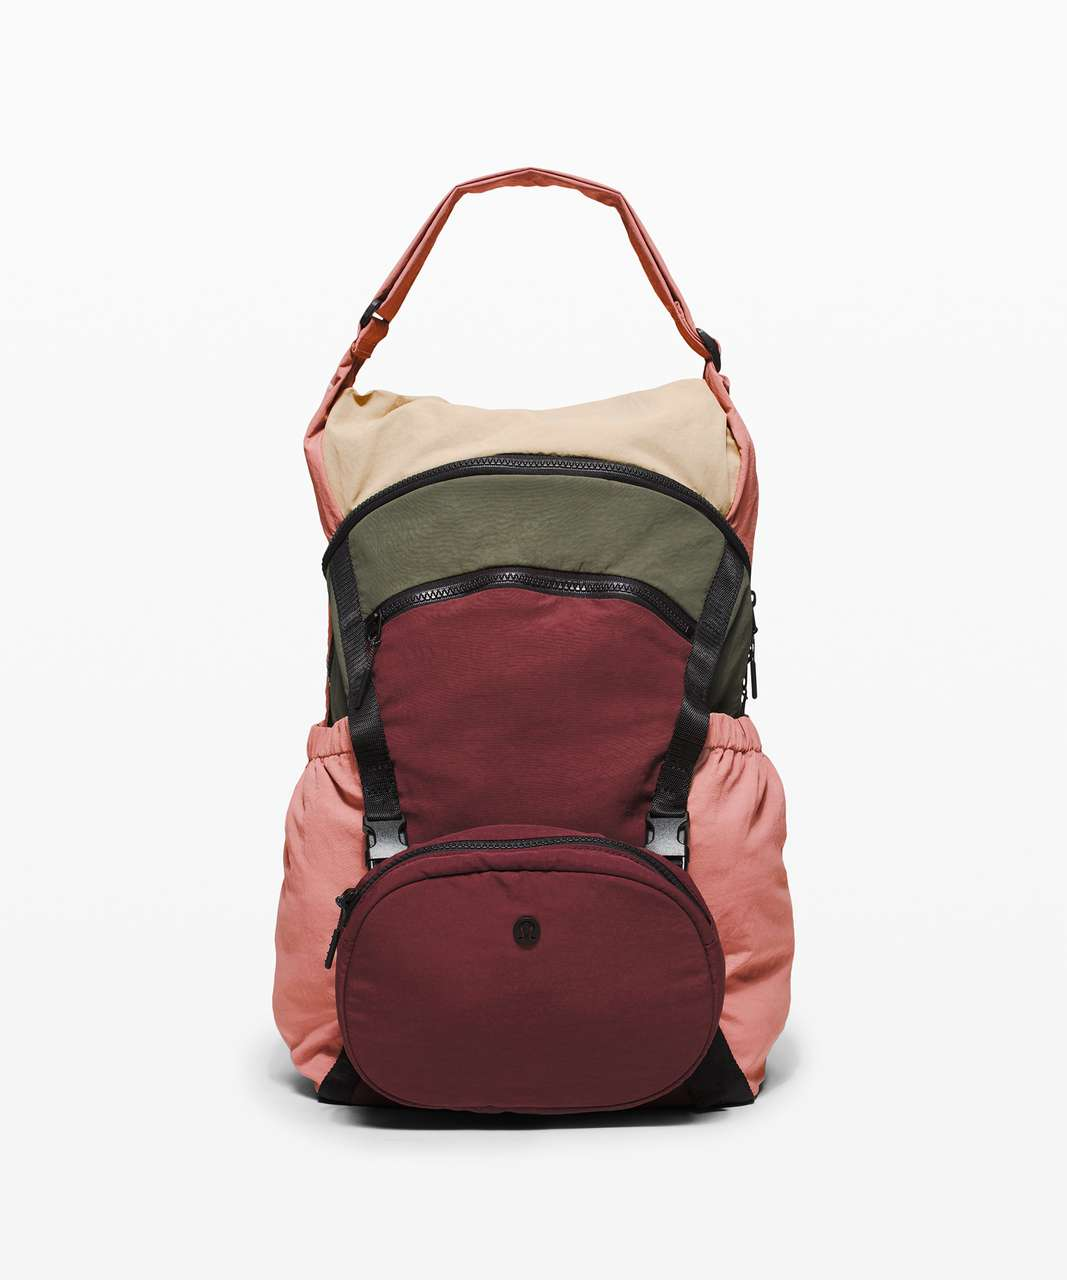 Lululemon Pack and Go Backpack - Deco Pink / Trench / Savannah / Army Green